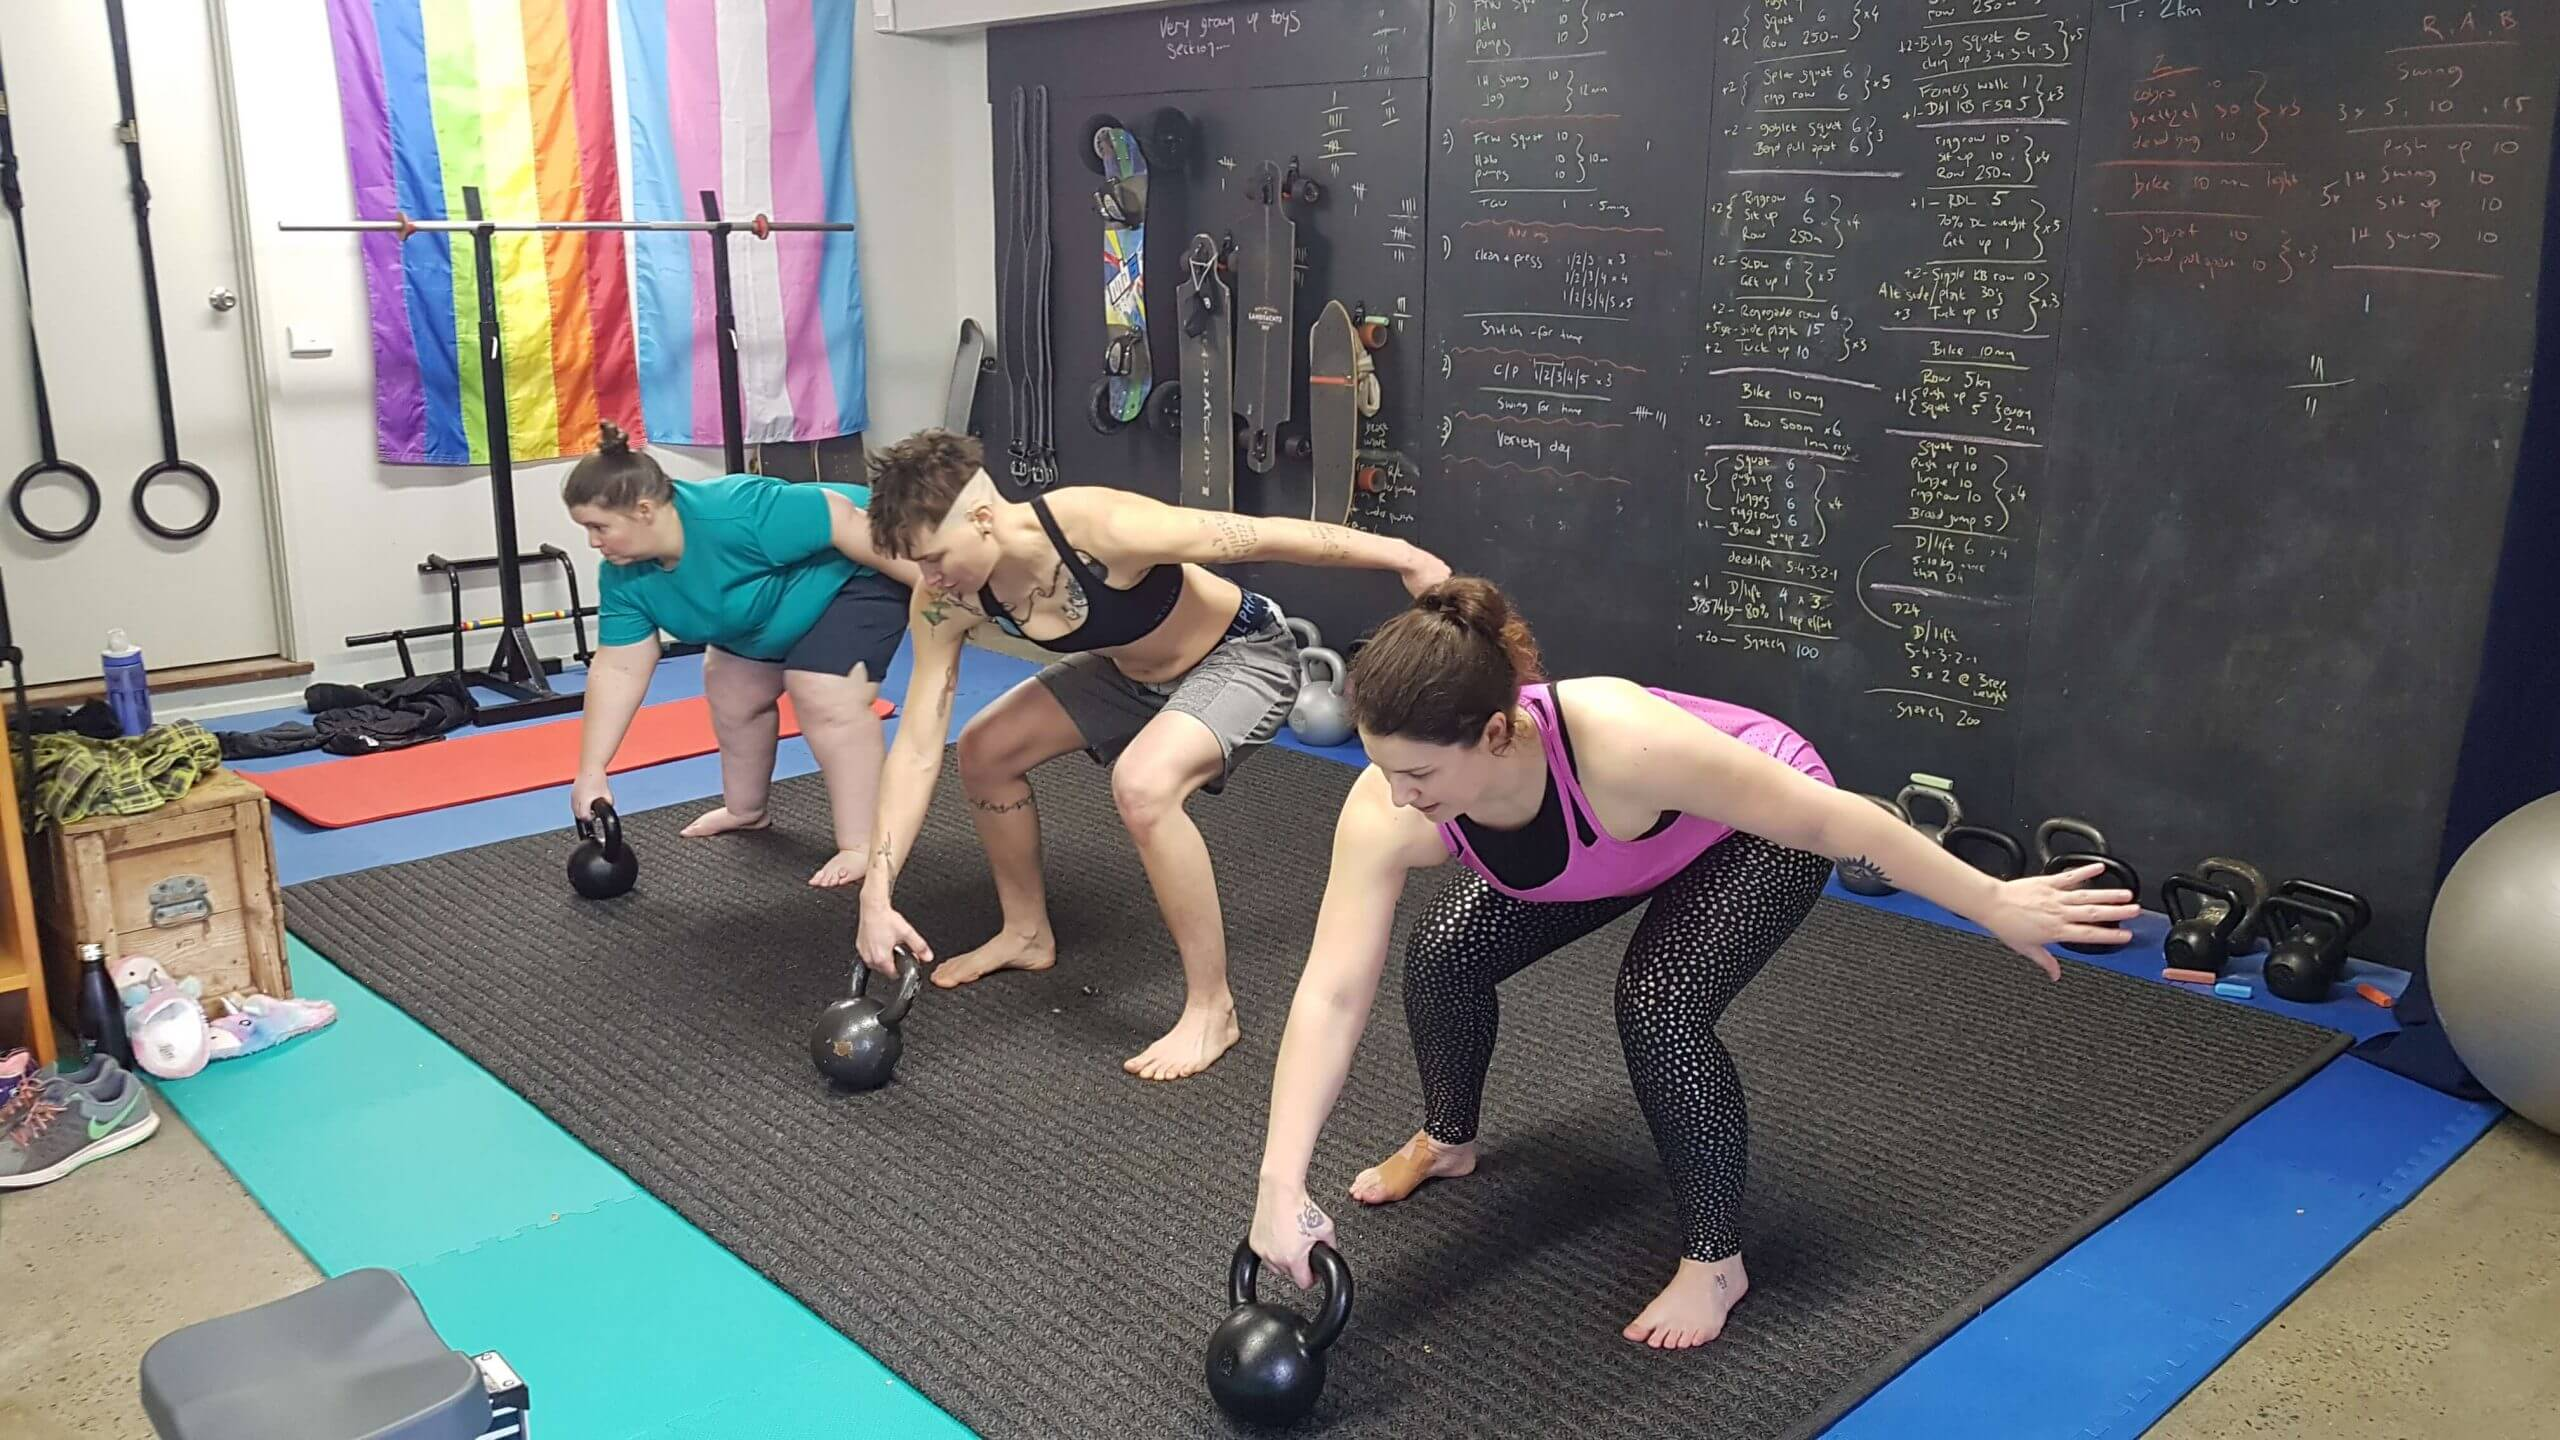 Alix Bowie and Rebecca starting a kettlebell swing during a group training session